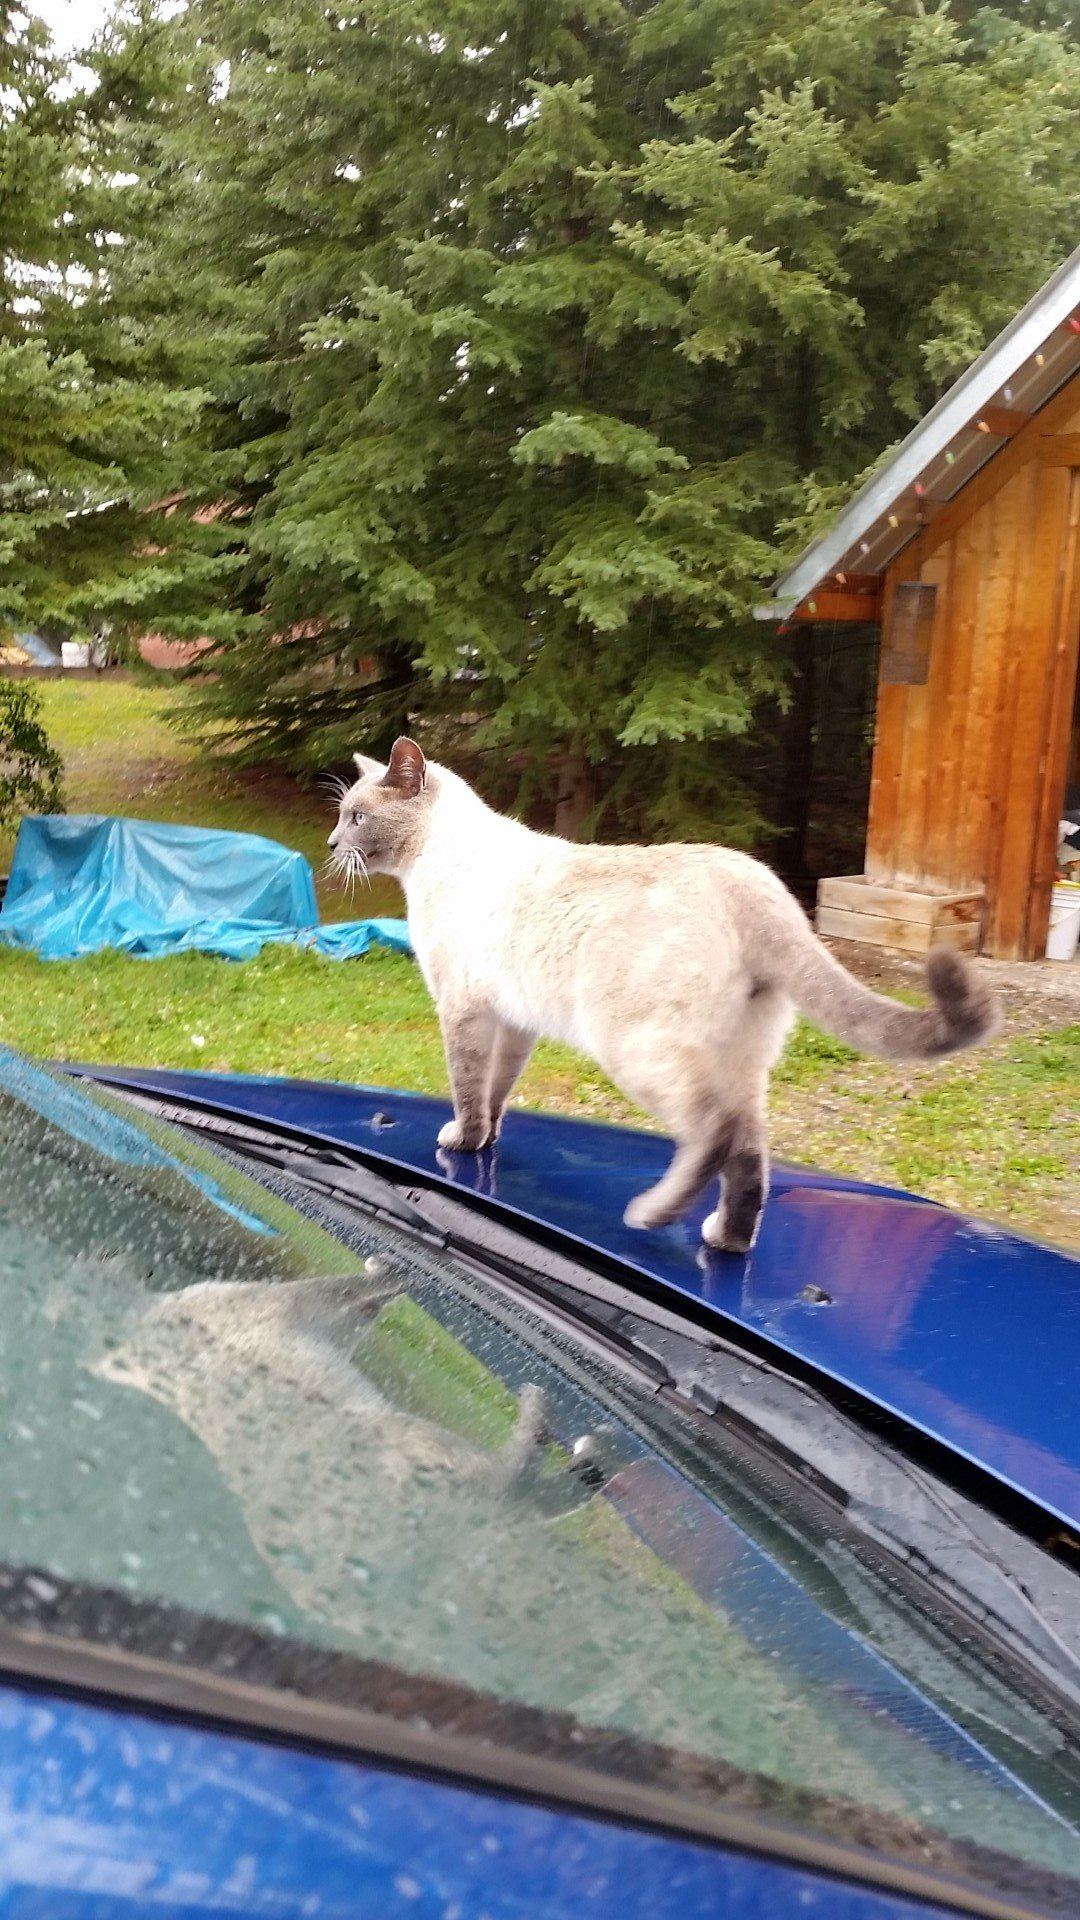 Stanley investigating the car